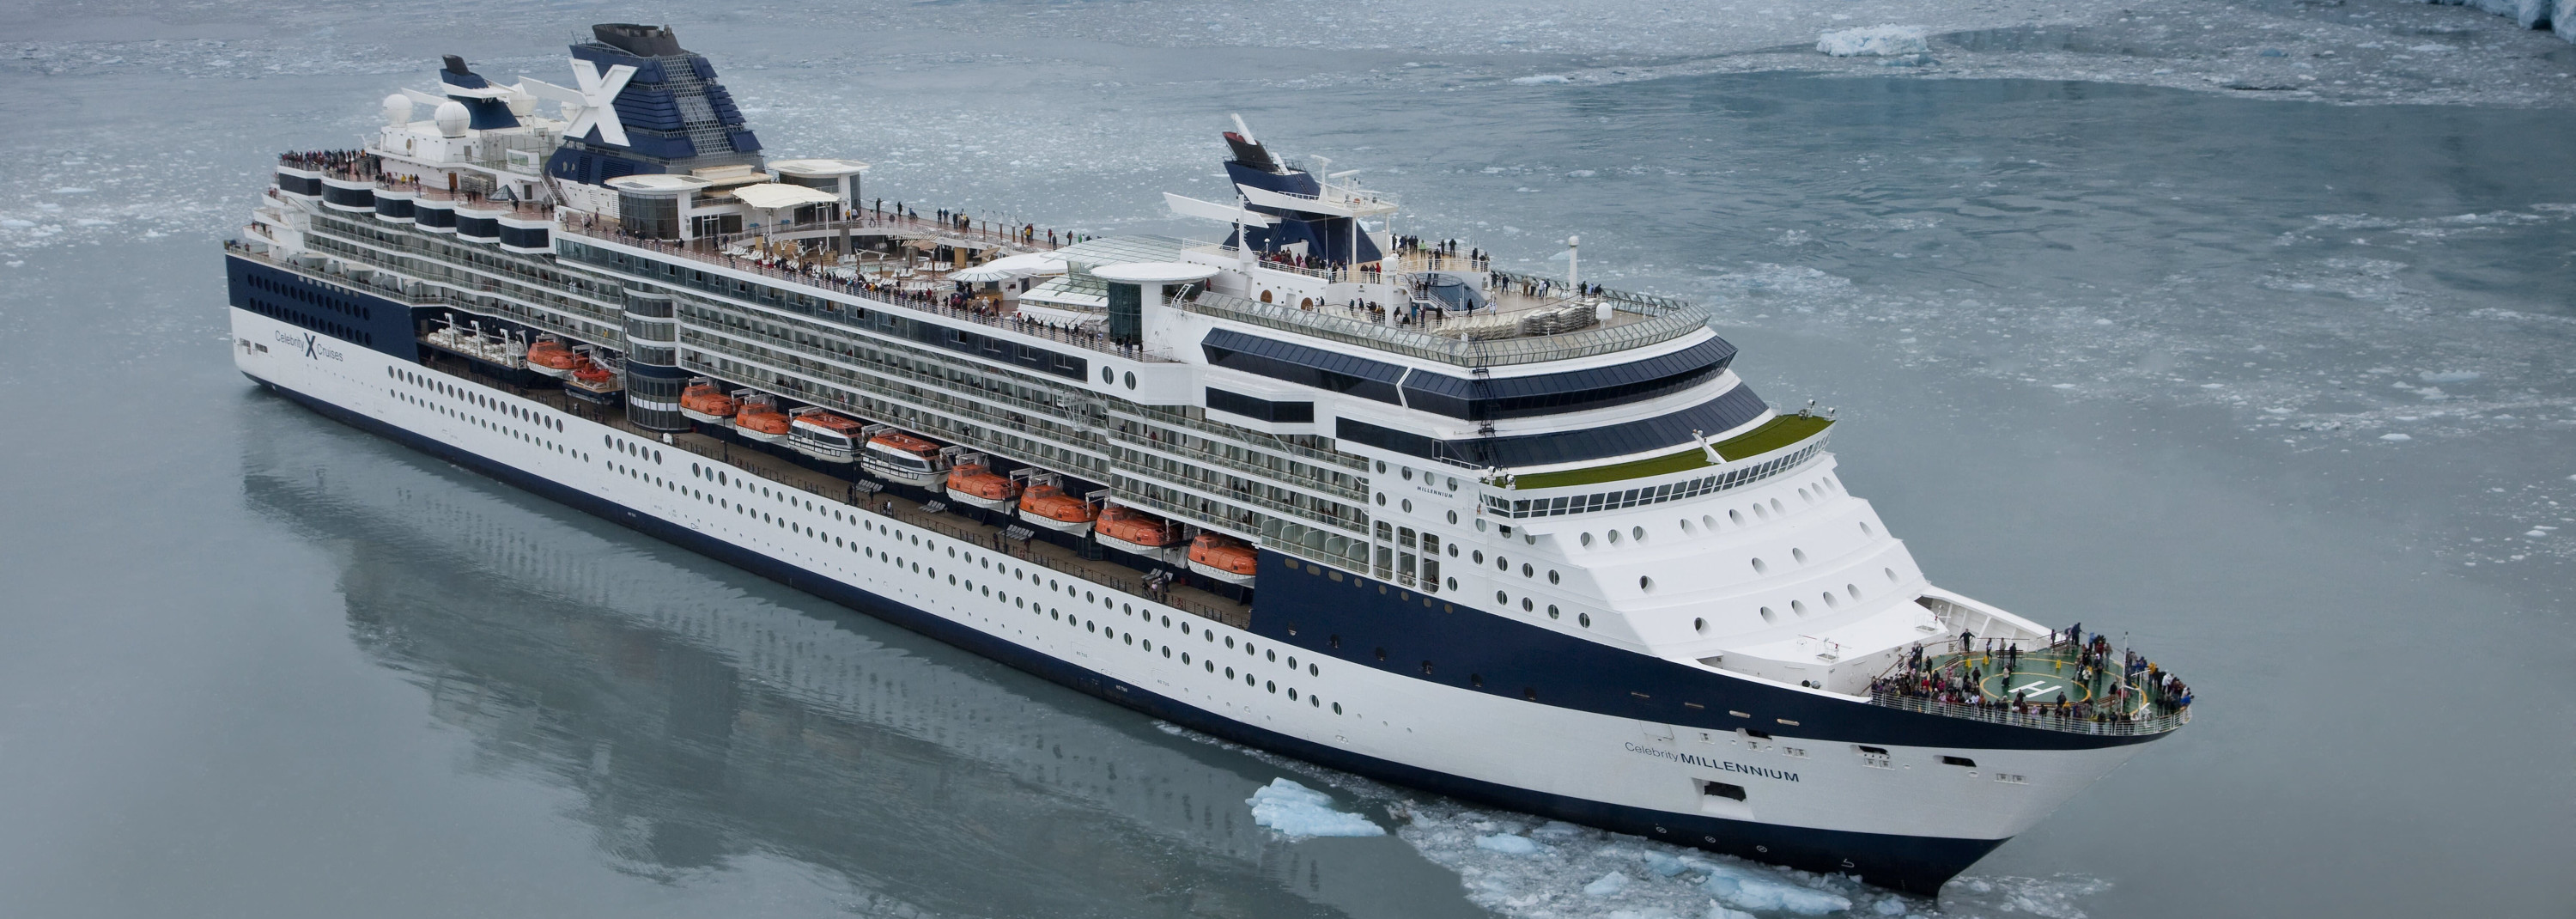 Singapore to Hong Kong Cruise from Singapore on Celebrity Millennium